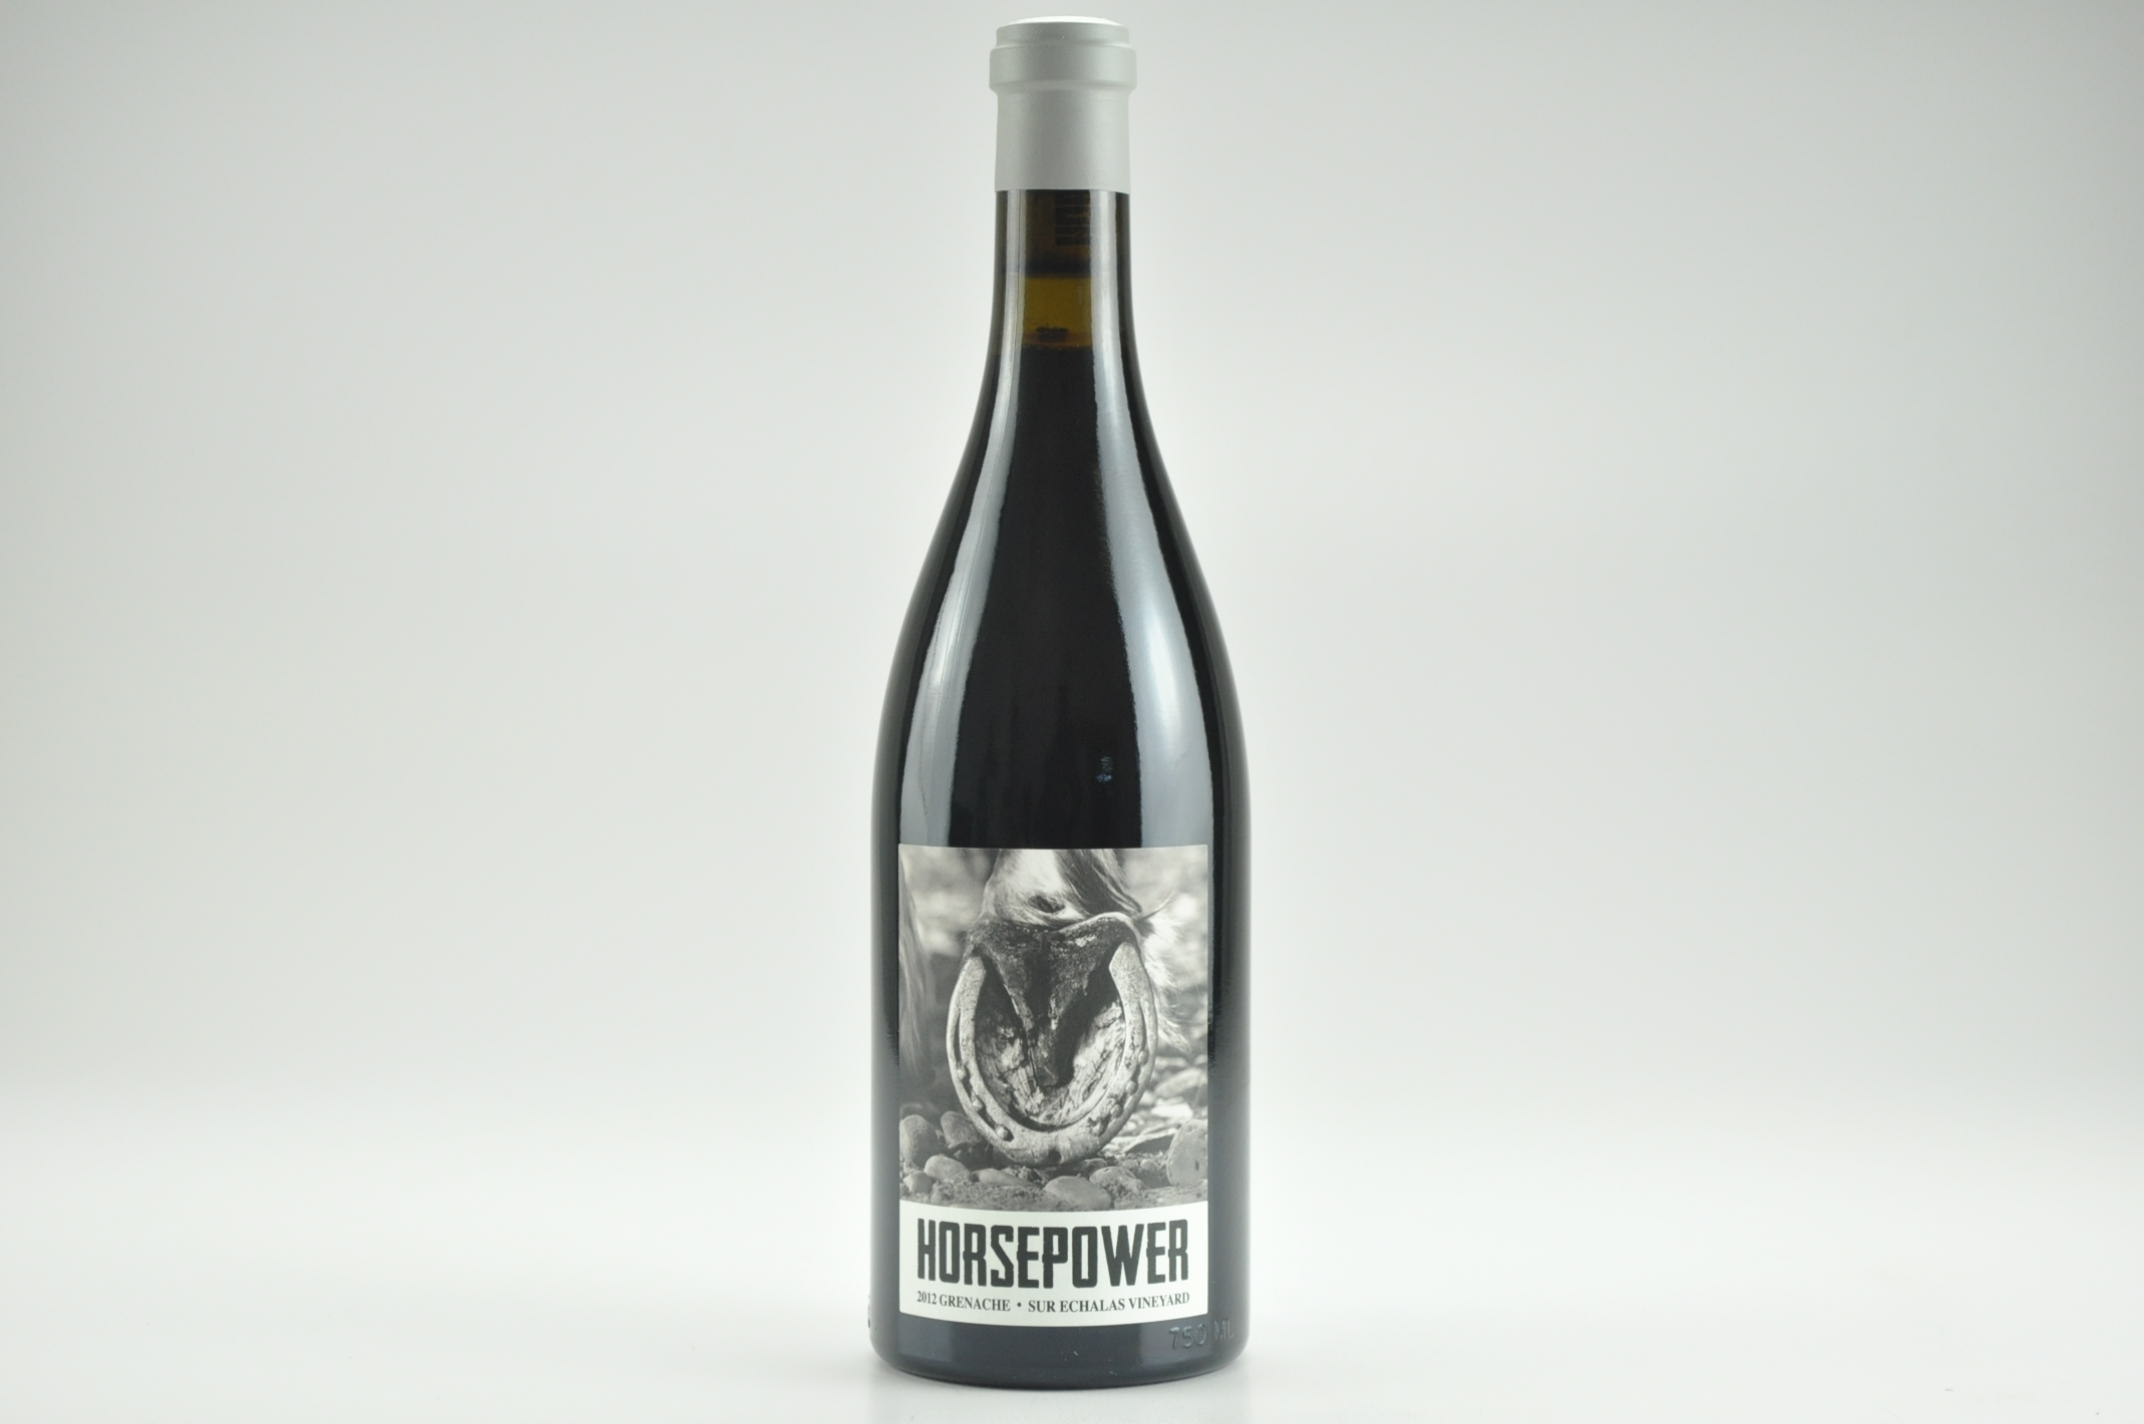 2012 Horsepower Grenache Sur Echalas Vineyard, Walla Walla Valley RP--95